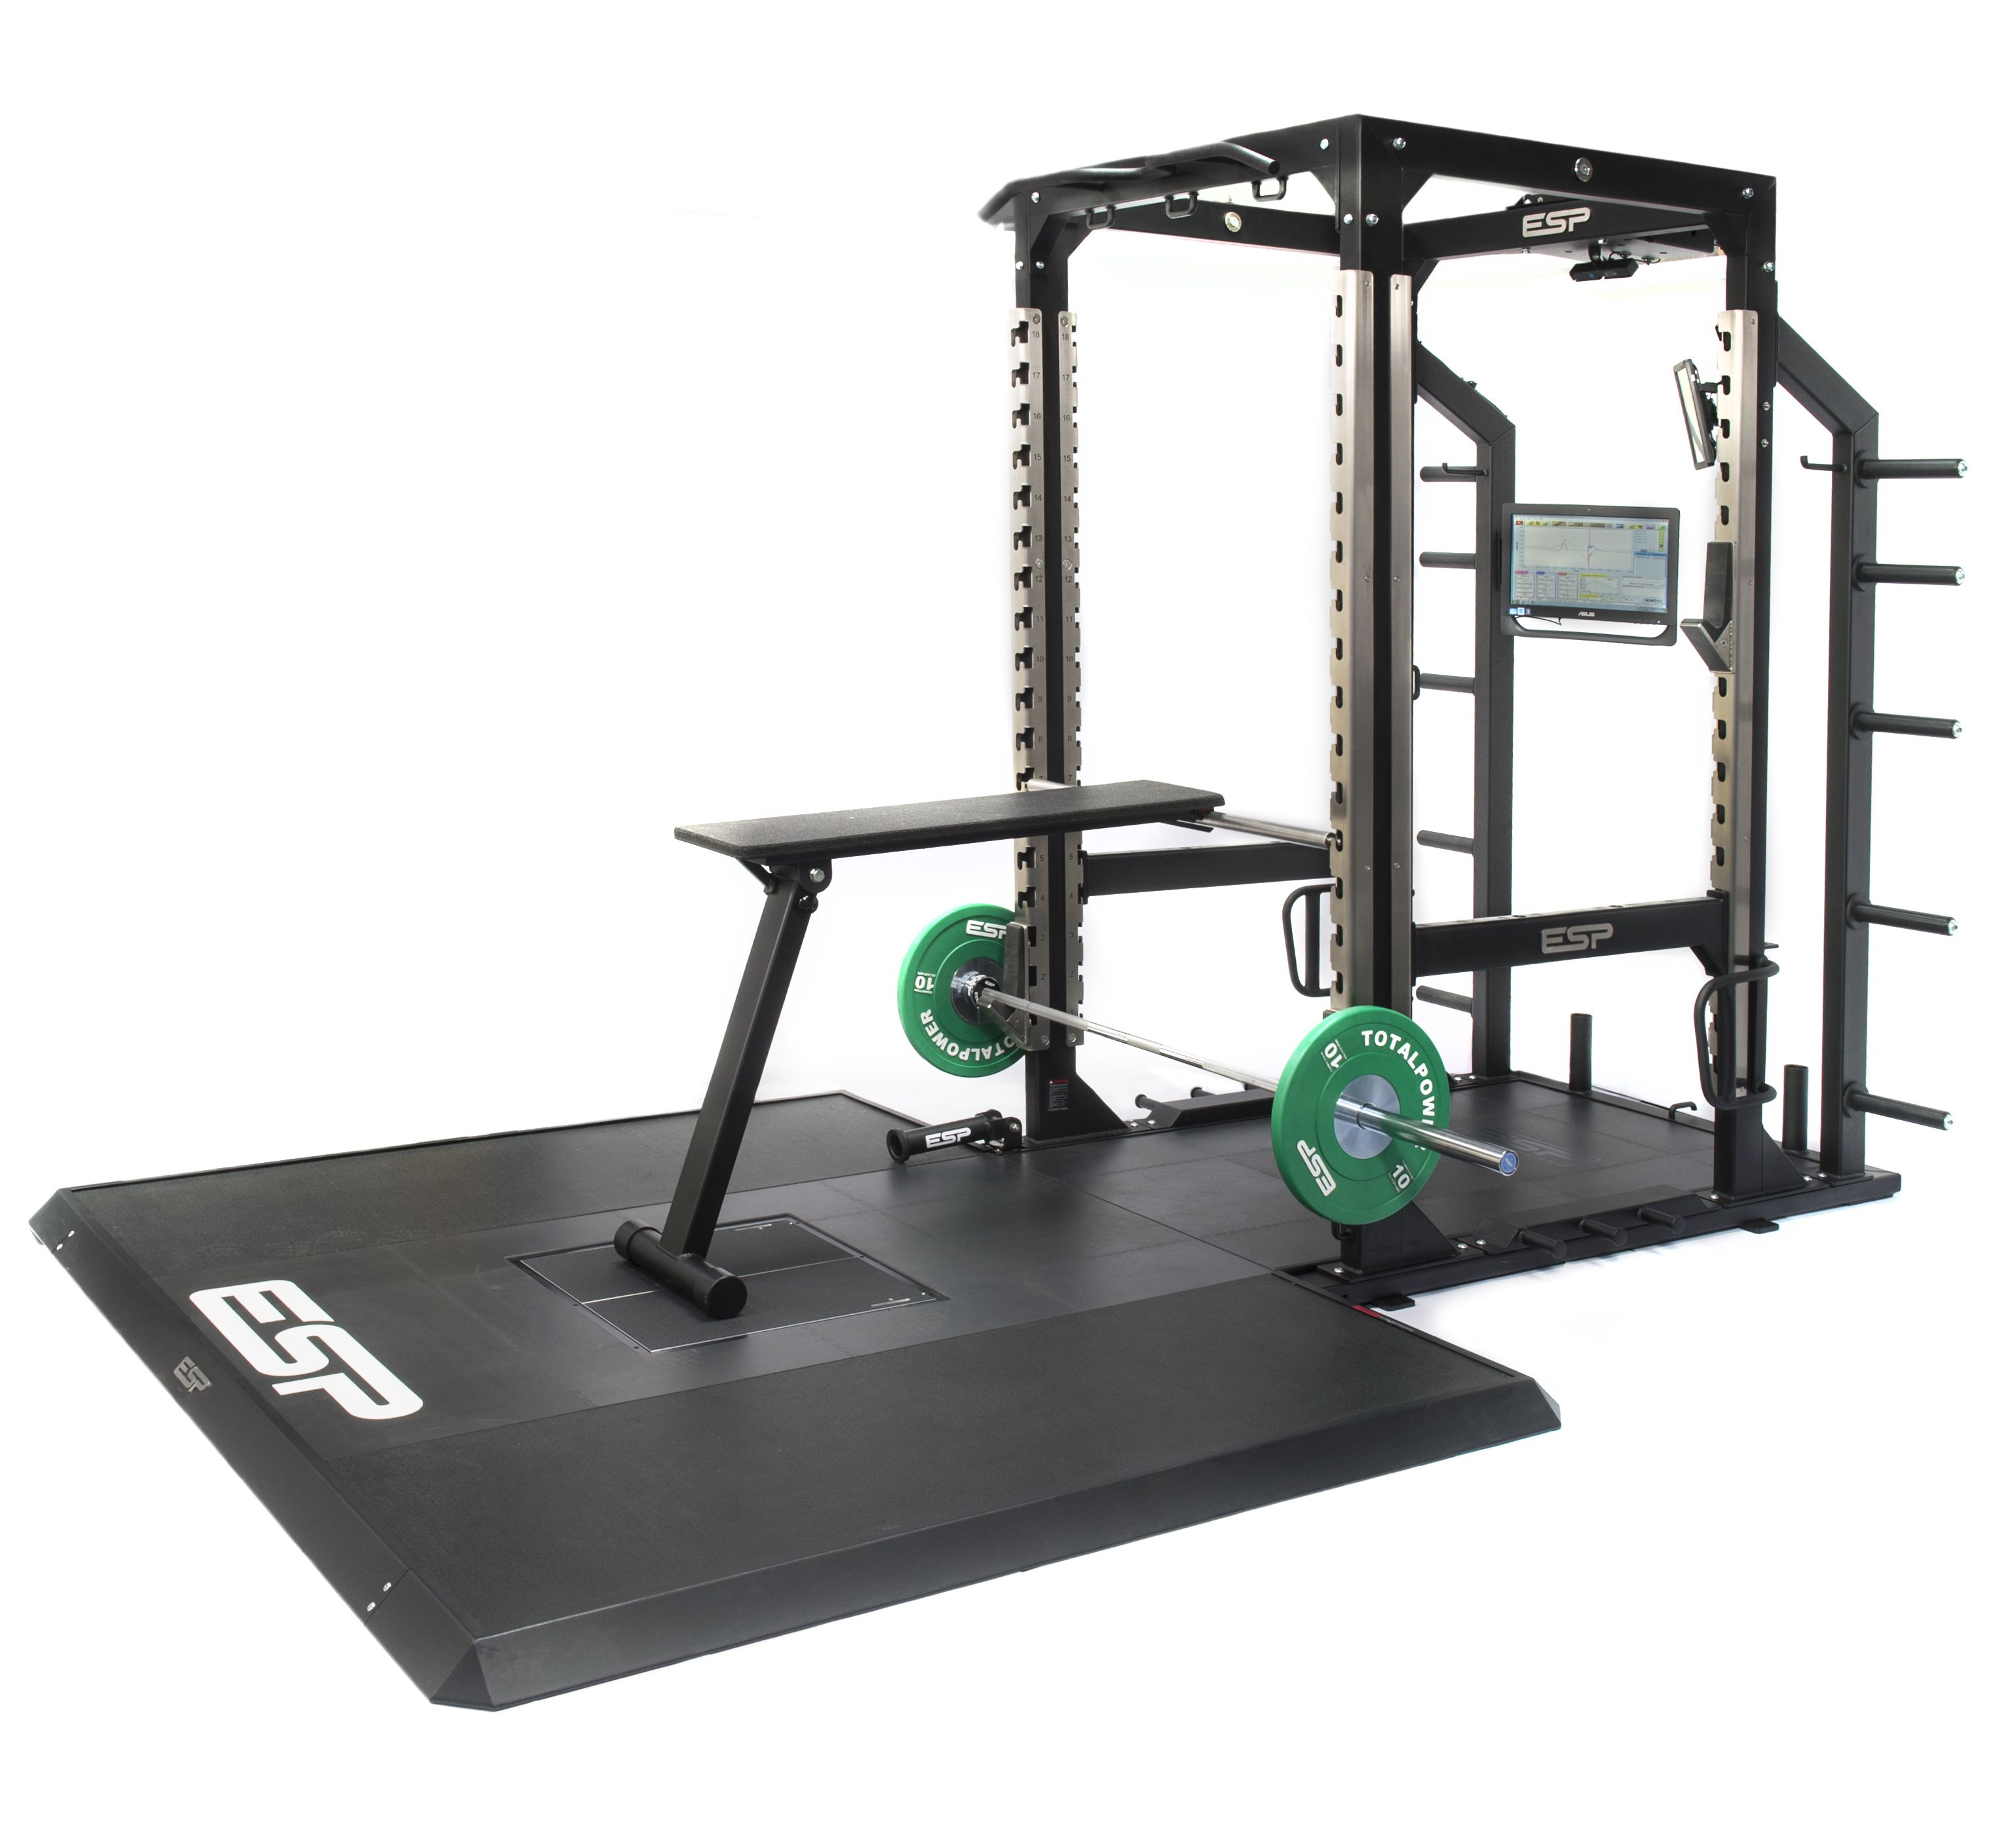 Esp fitness power bench prone row bench compact